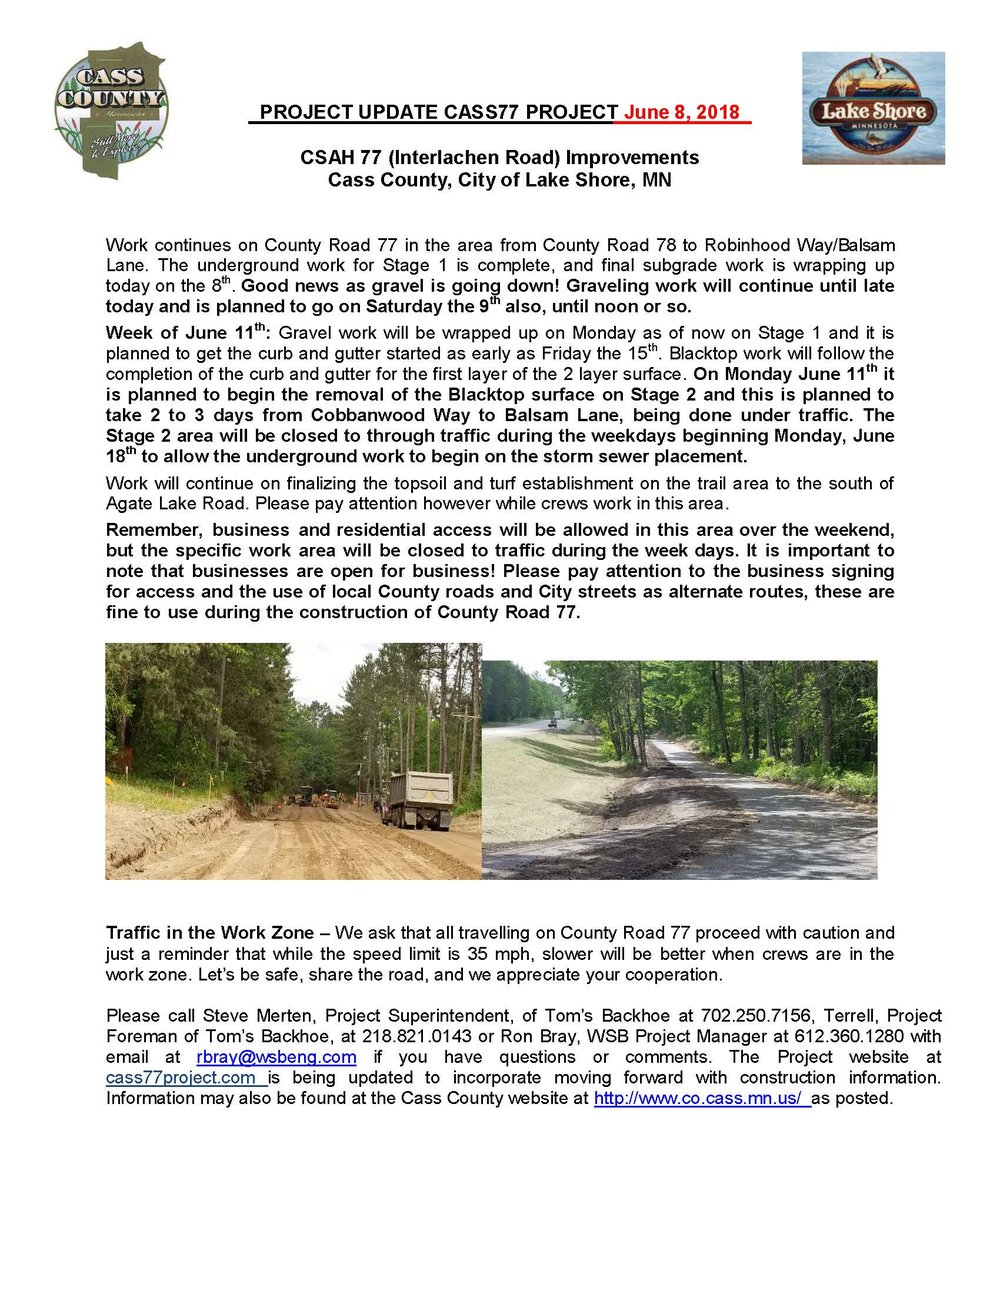 Cass County CSAH 77 Project update June 8 2018.jpg